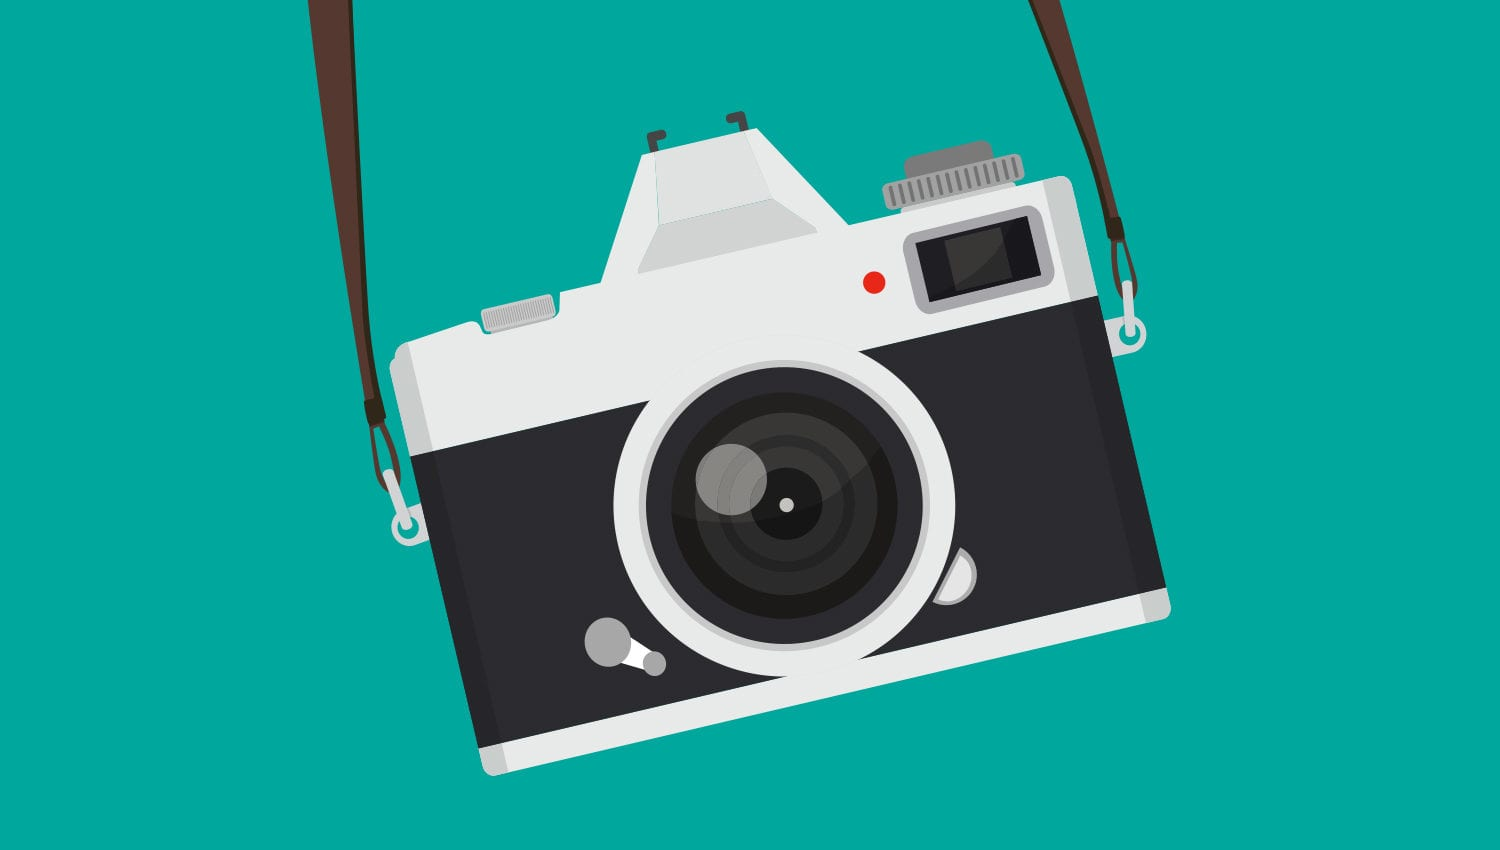 Marketing Tip: Use real photography